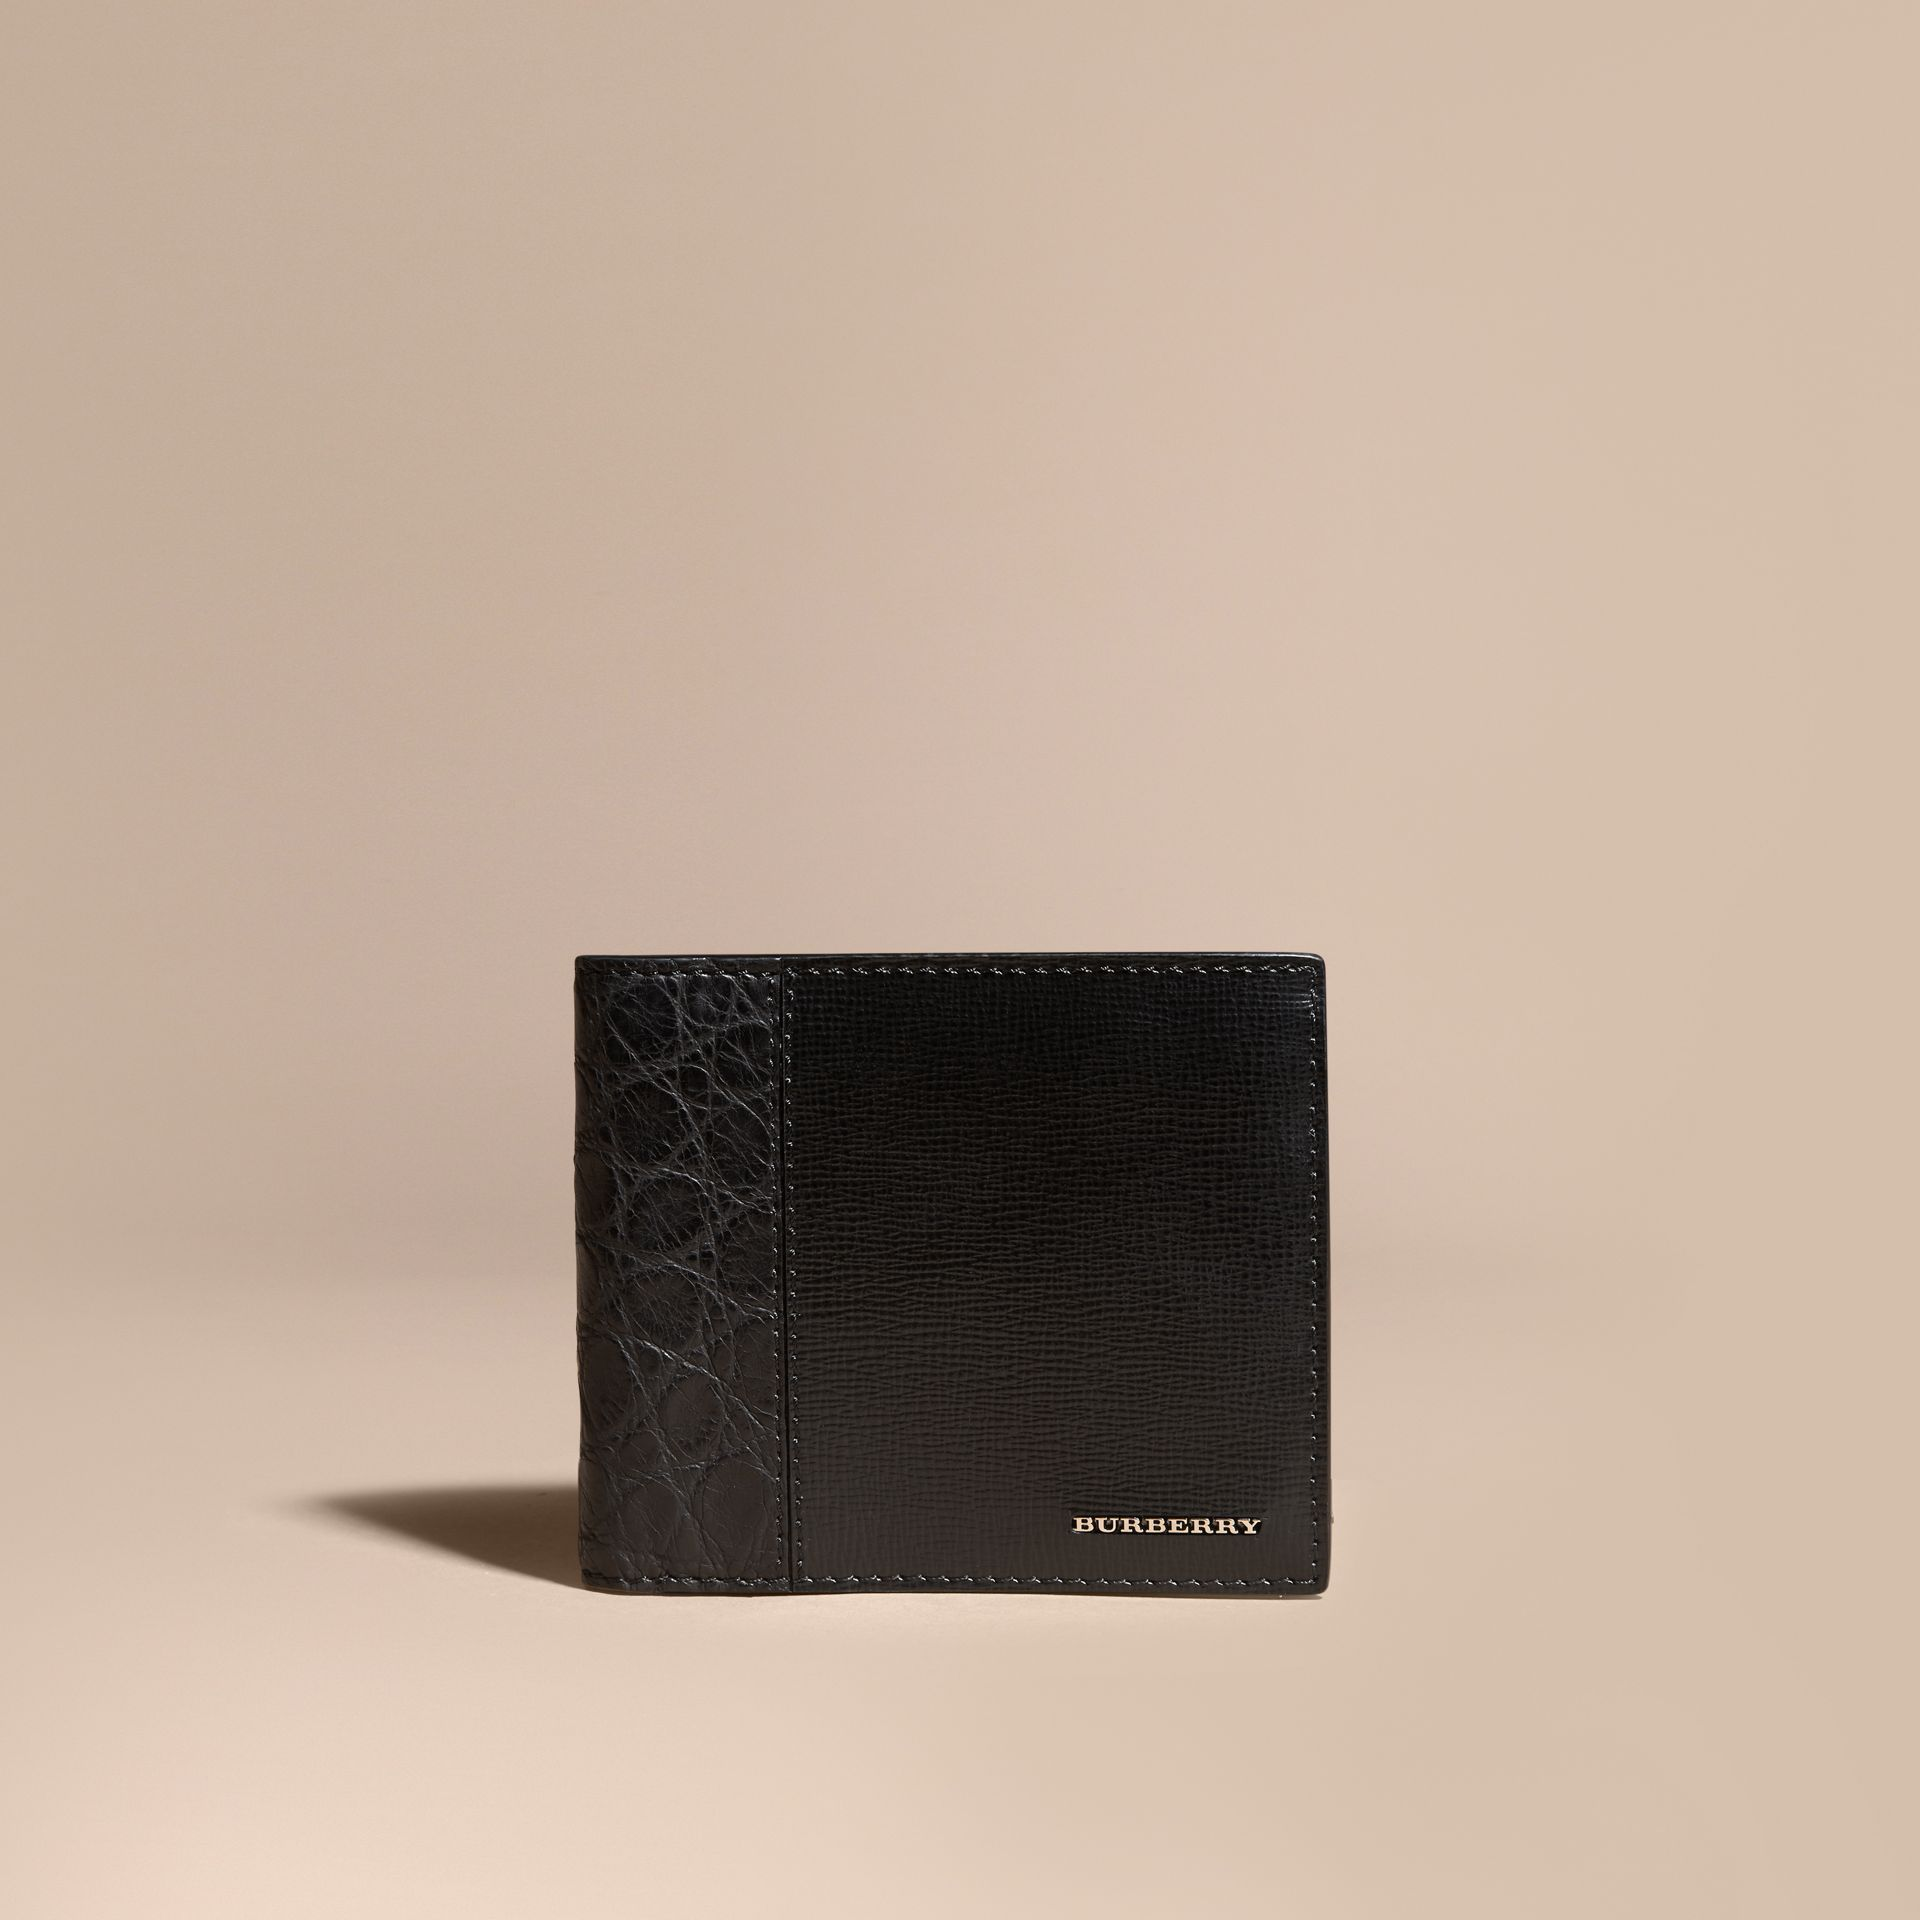 Leather and Alligator International Bifold Wallet in Black - Men | Burberry - gallery image 5